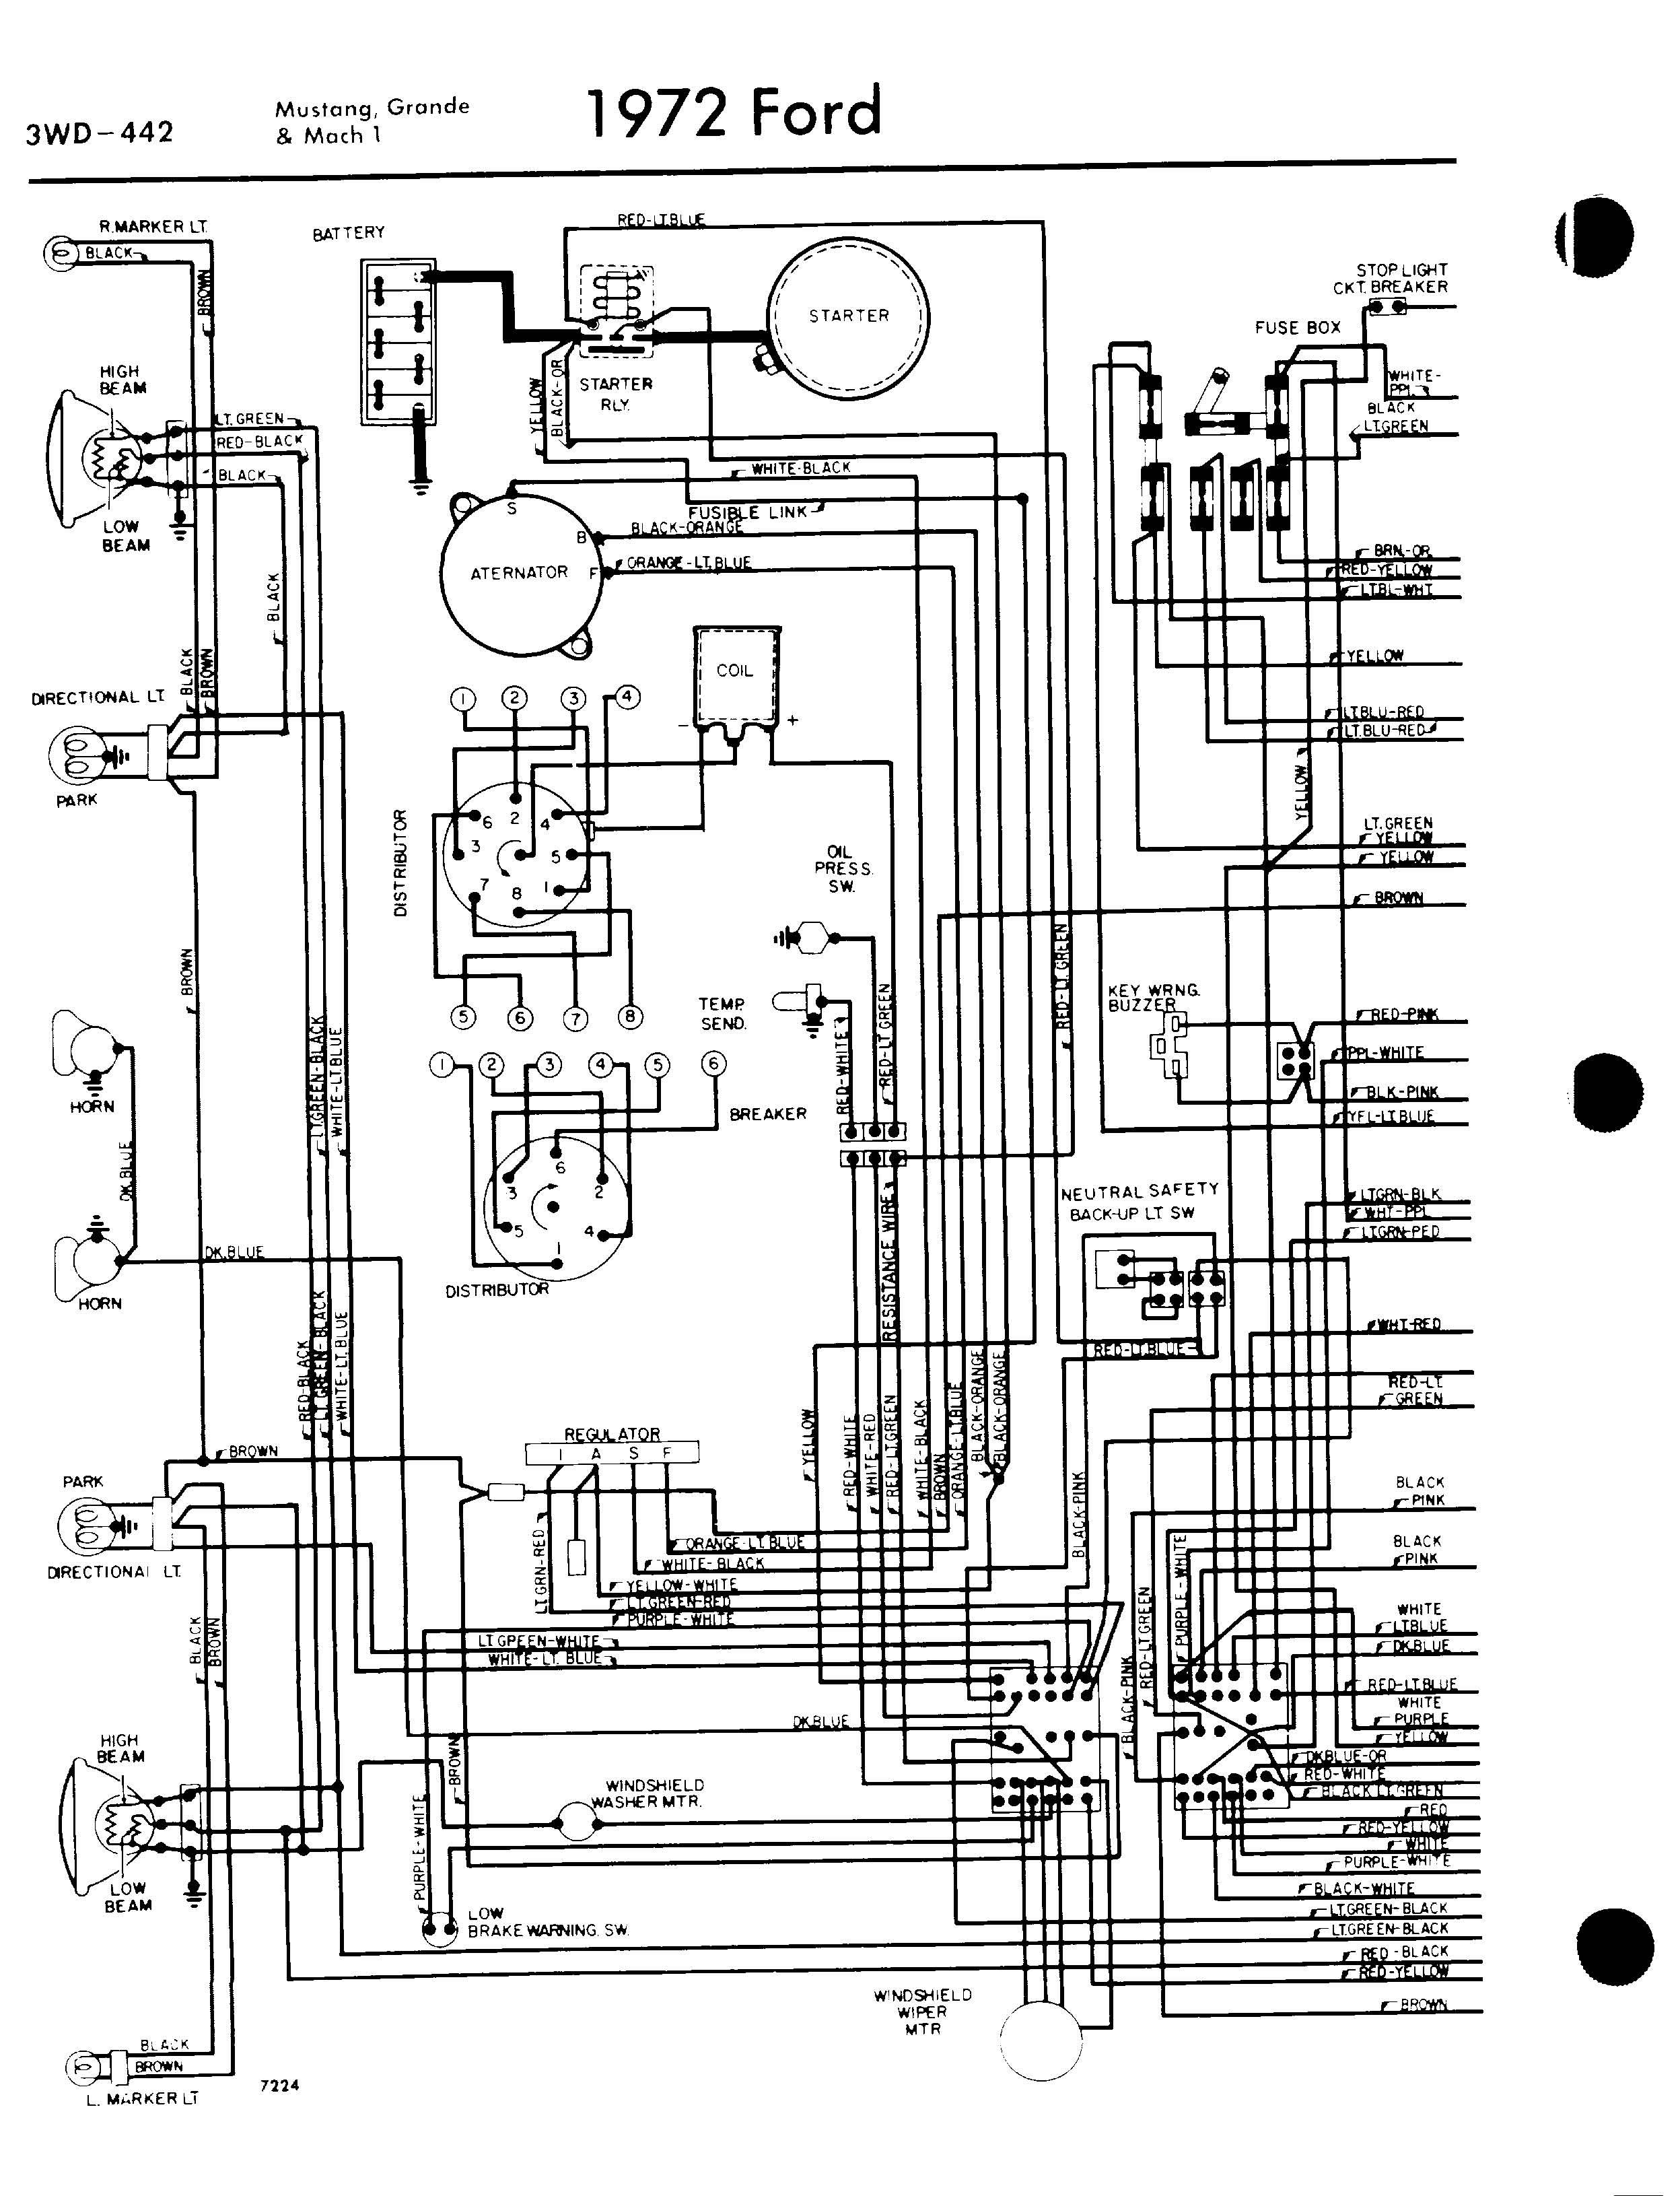 72 mach1 alternator wire harness diagram yahoo search results rh pinterest com Ford Aftermarket Wiring Harness Universal Ford Wiring Harness